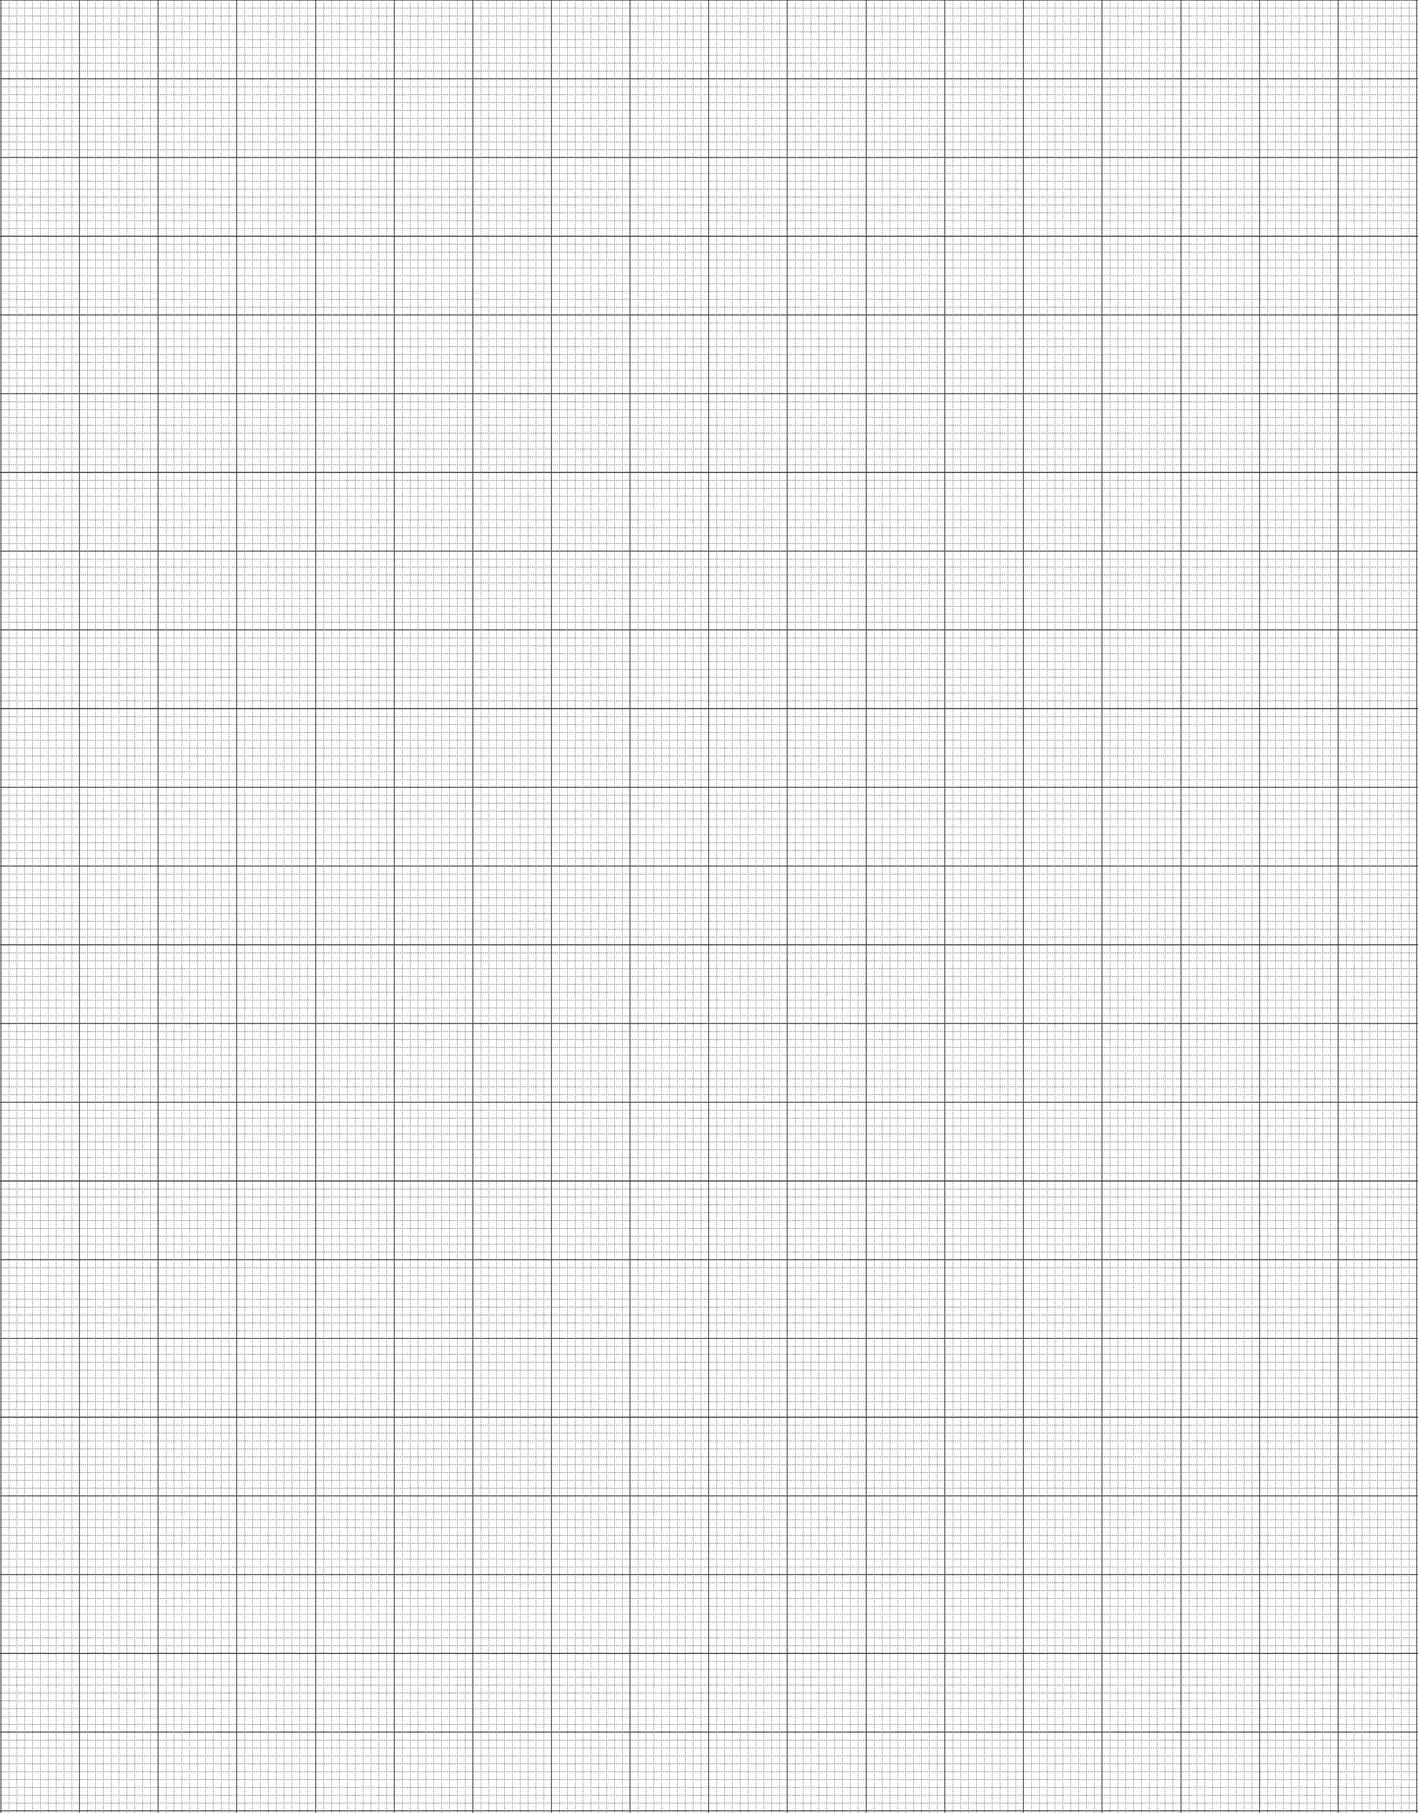 graph paper word document – How to Print Graph Paper in Word